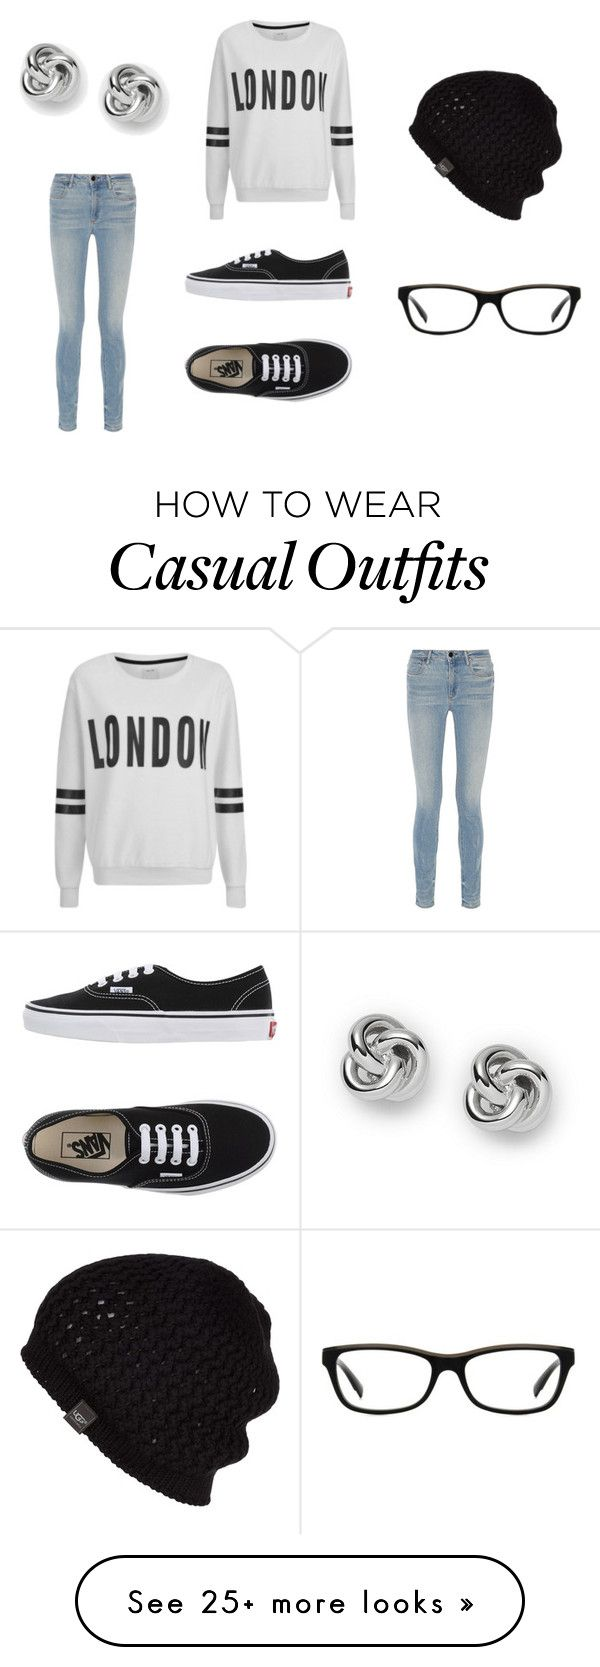 Casual by hannah-millar on Polyvore featuring Alexander Wang, ONLY, Vans, UGG Australia, Armani Exchange, FOSSIL and London